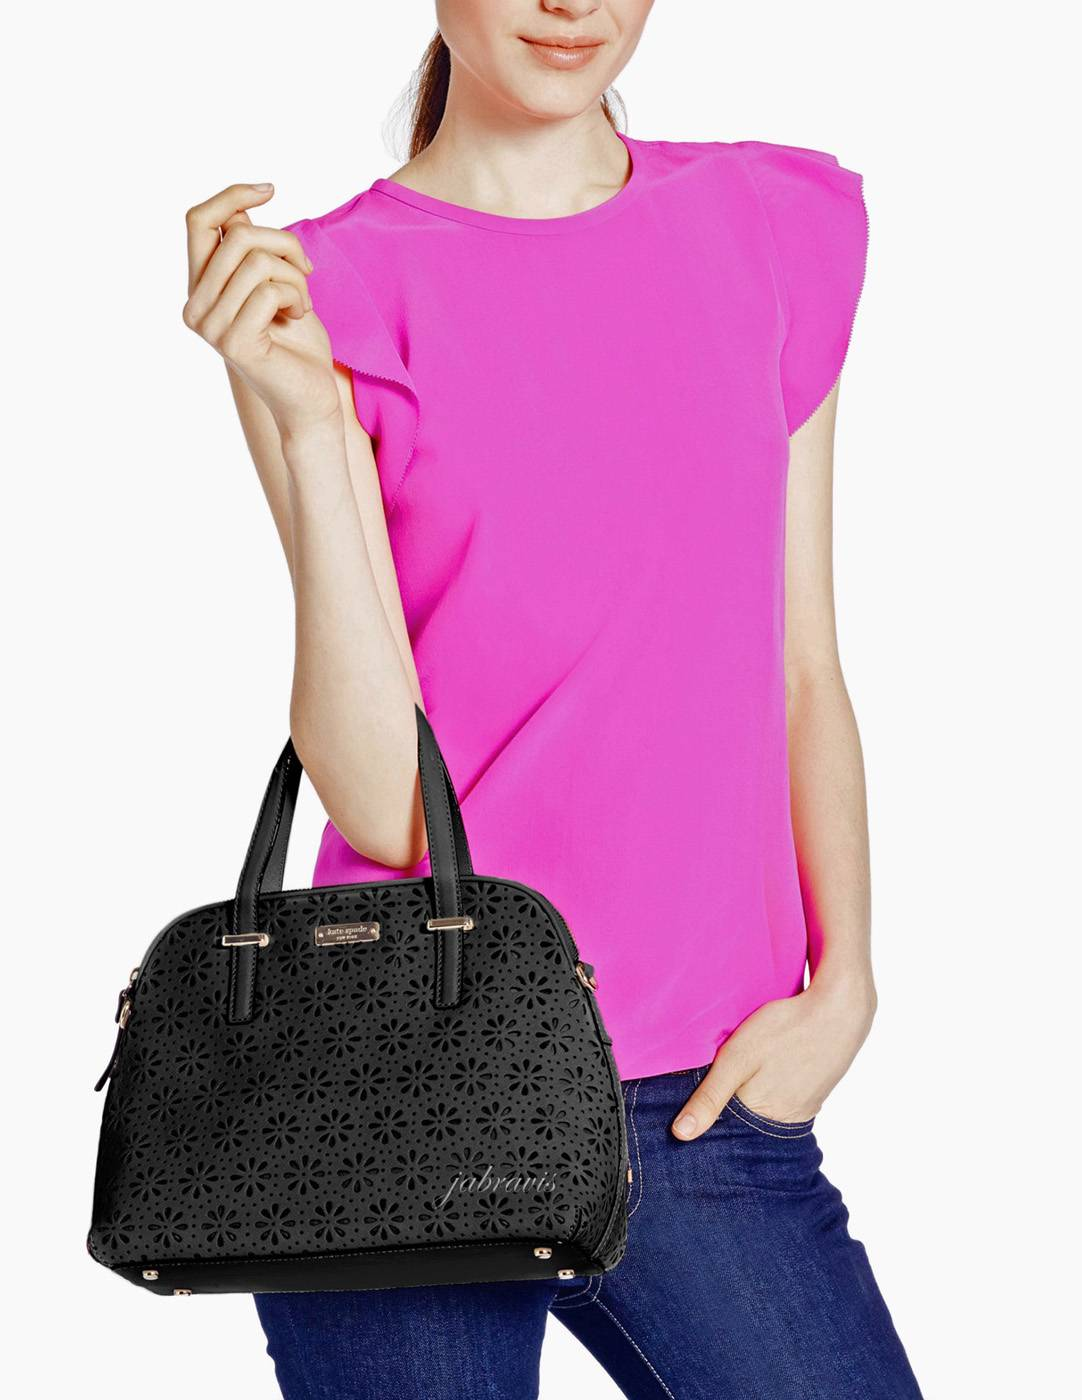 Kate Spade Black Cedar Street Perforated Leather Maise